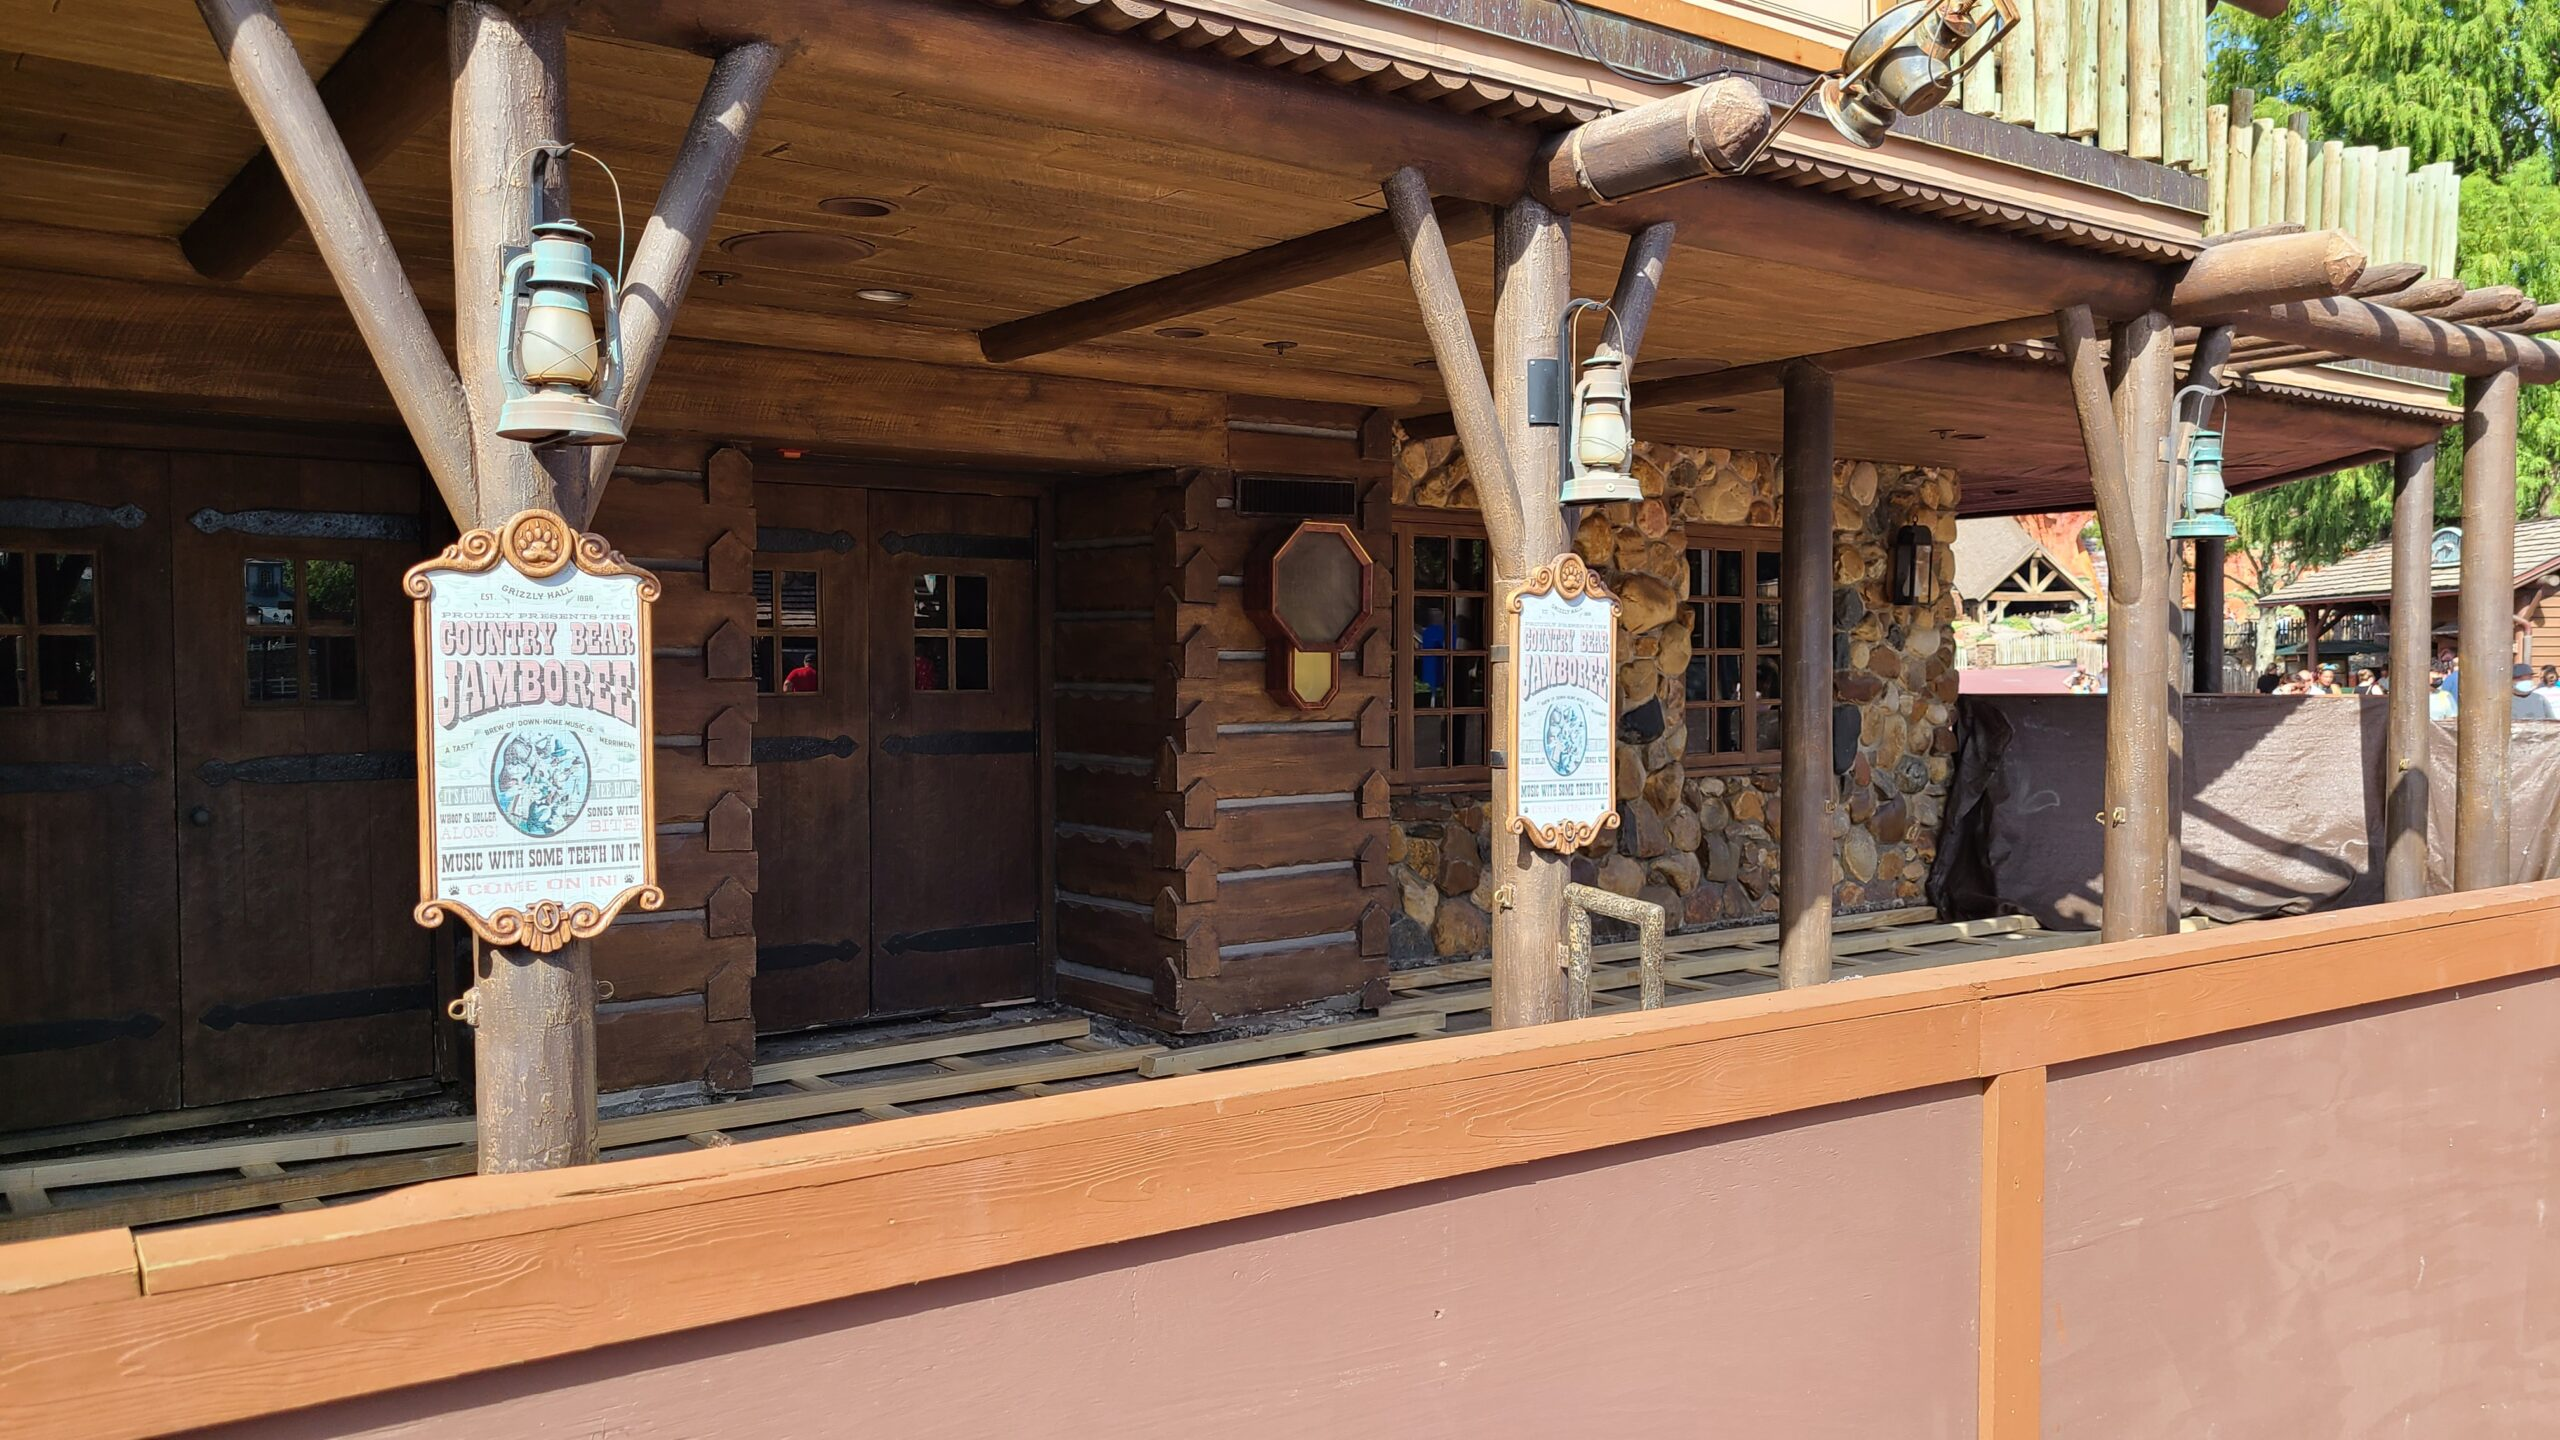 Construction on the entrance of Country Bear Jamboree 2